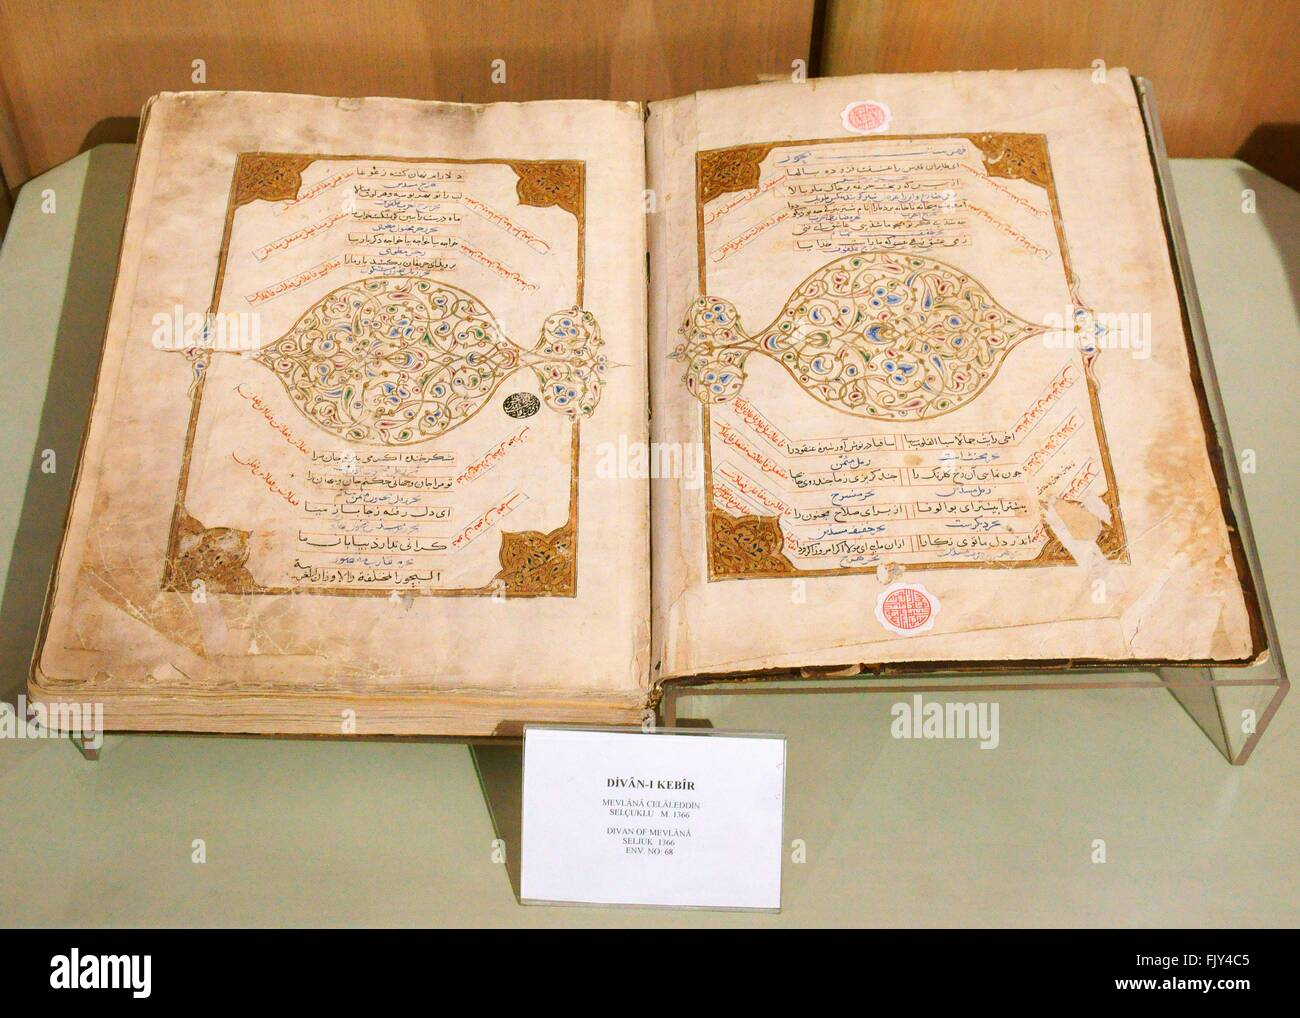 Mevlana Museum, city of Konya, Turkey. Book of poems or masnavis written by Sufi mystic Mevlana dates from 1366 - Stock Image